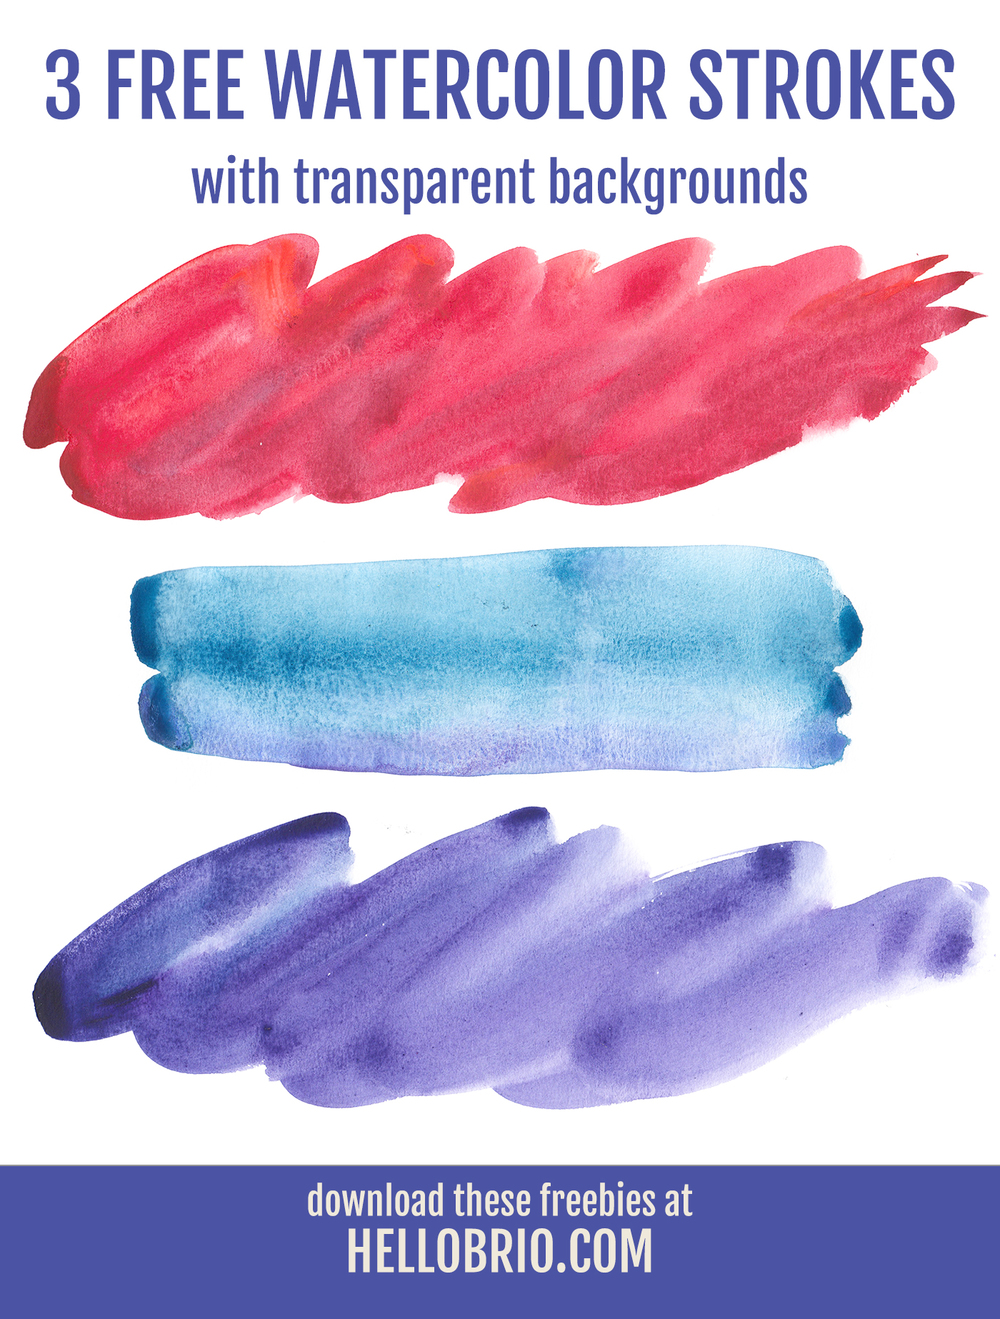 Download these three free watercolor strokes at hellobrio.com — they come with transparent backgrounds so you can use them for a multitude of applications